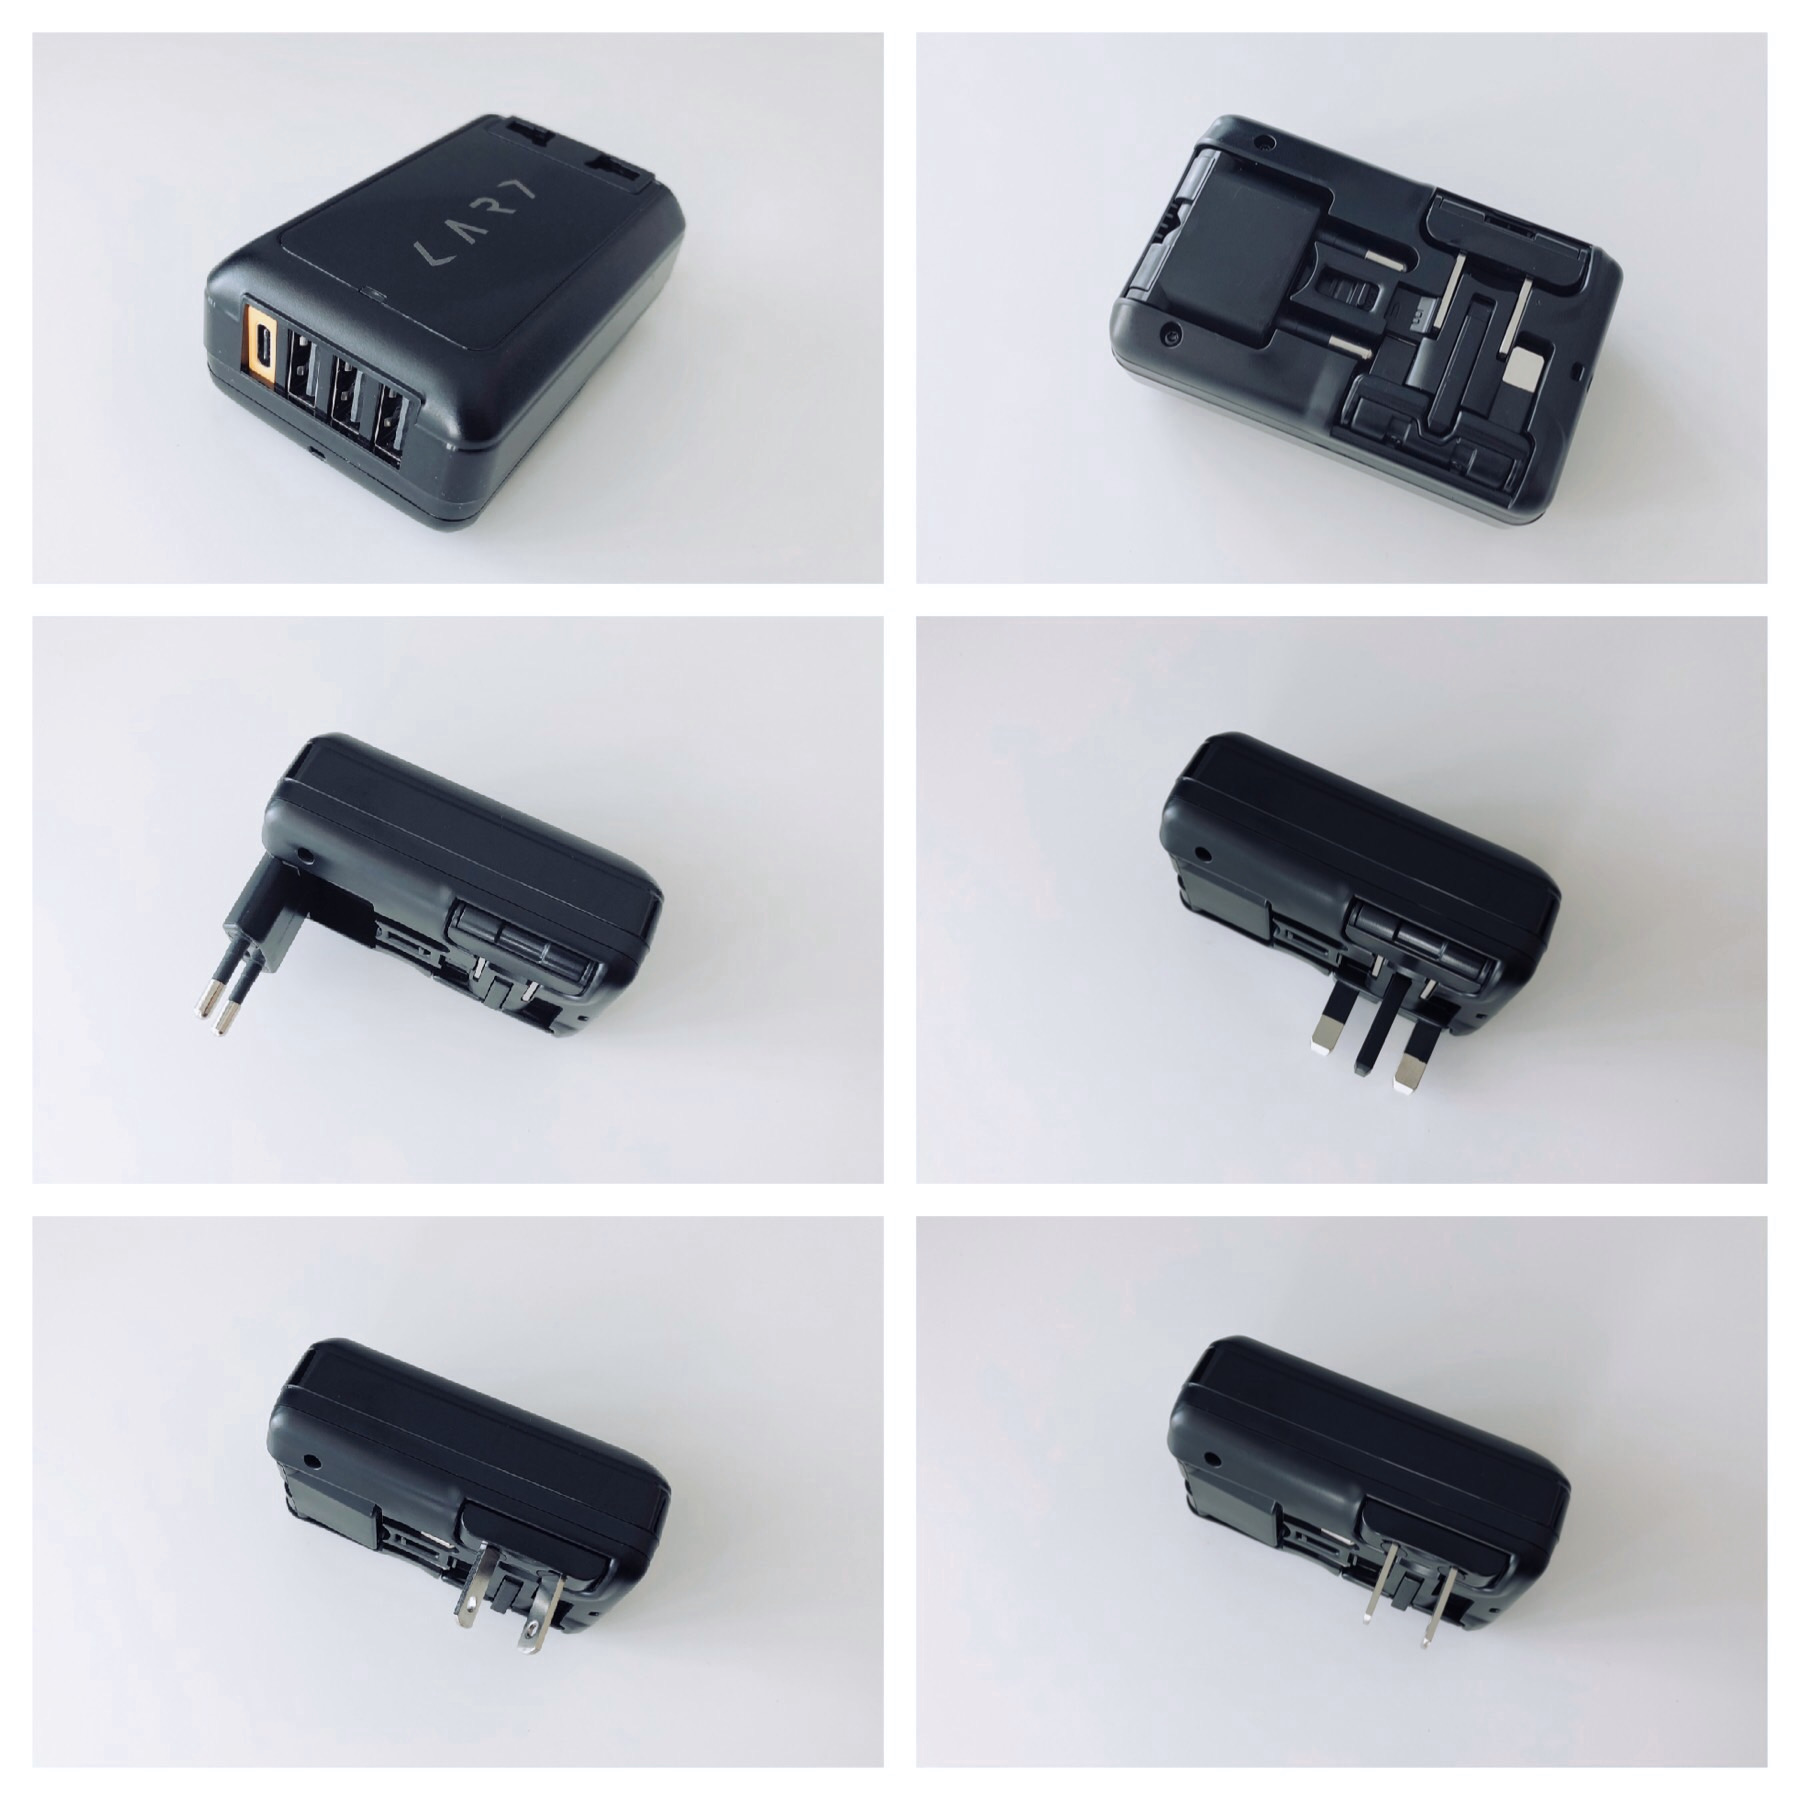 Adapter configurations